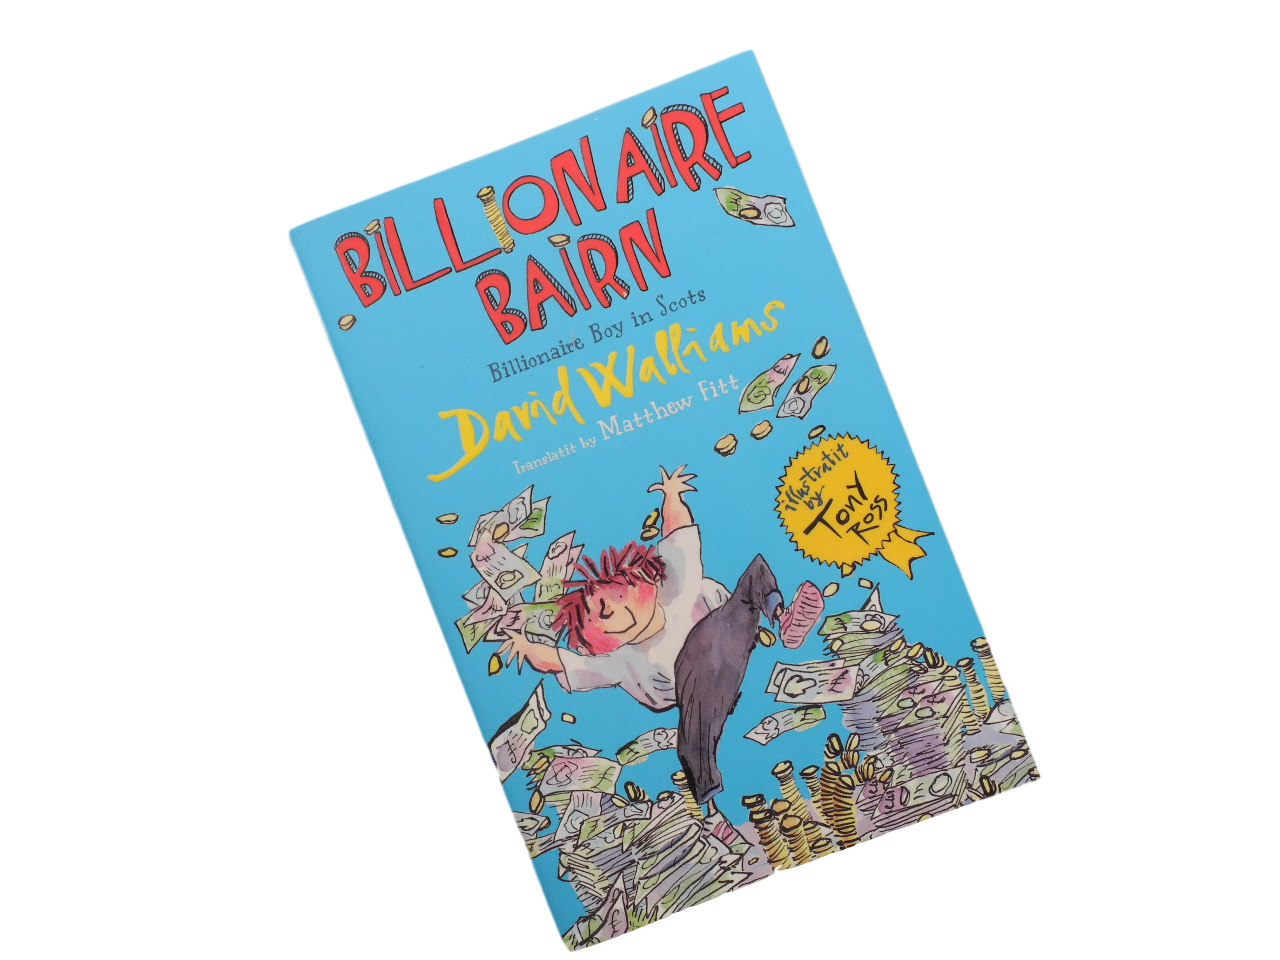 scottish book for children billionaire boy bairn david walliams matthew fitt scots language